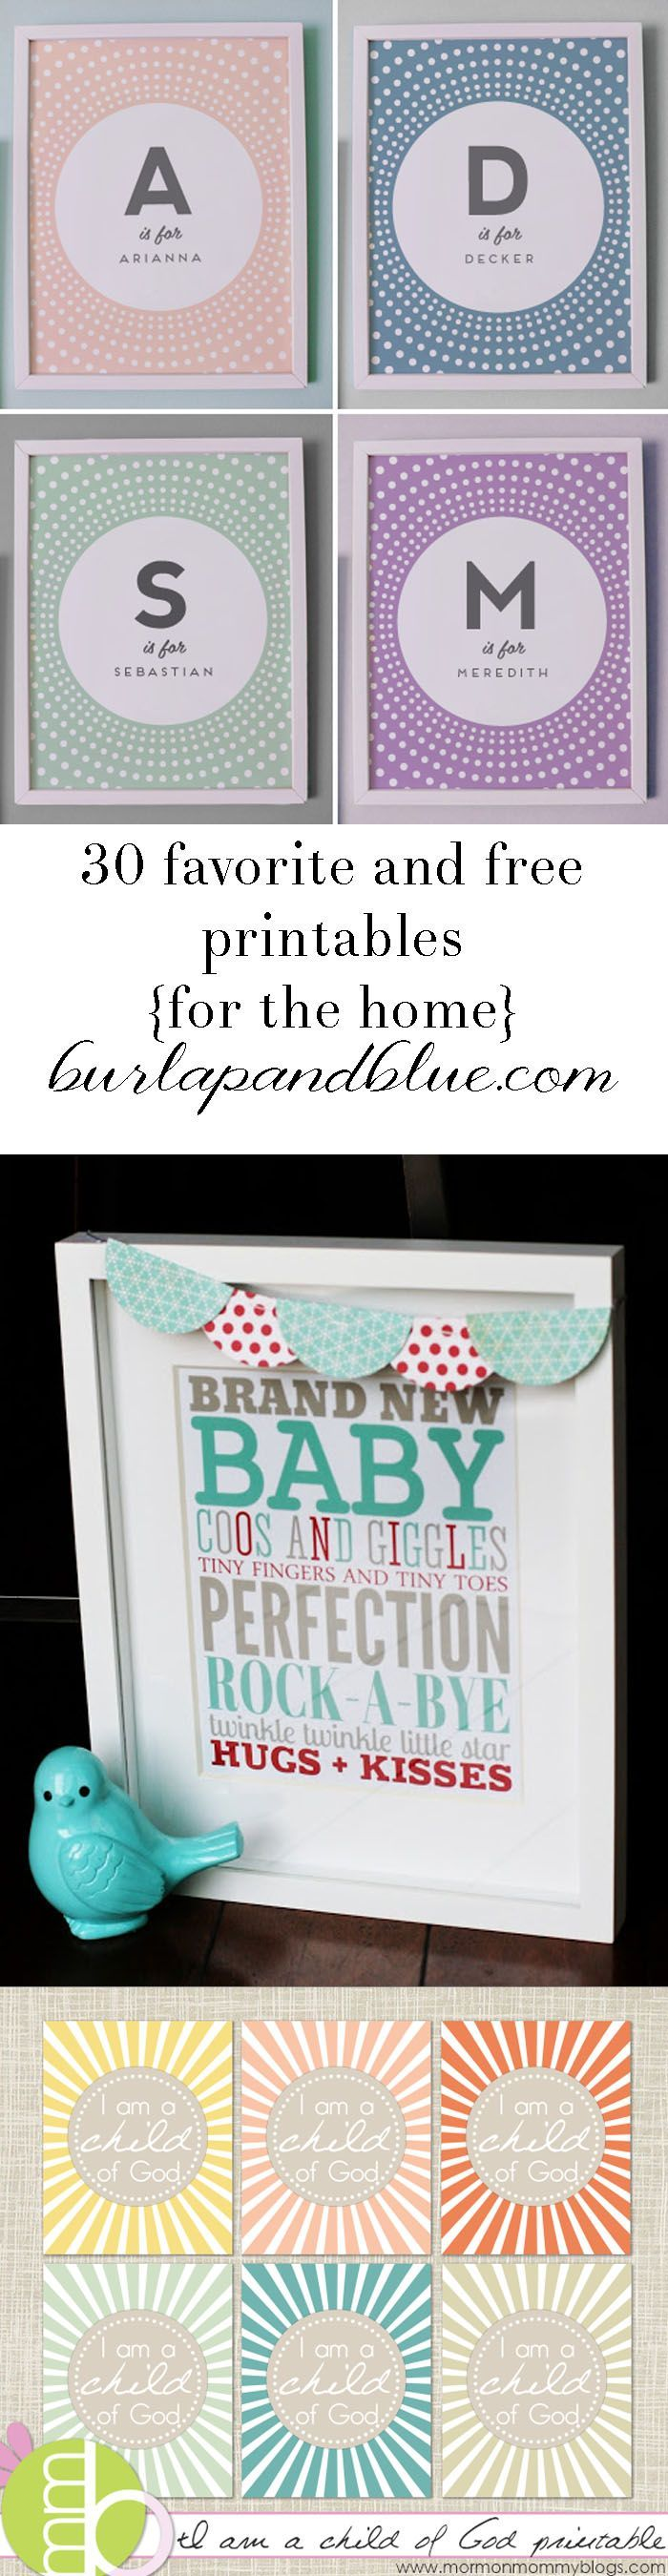 1656 best Printables images on Pinterest | Free printables, Free ...